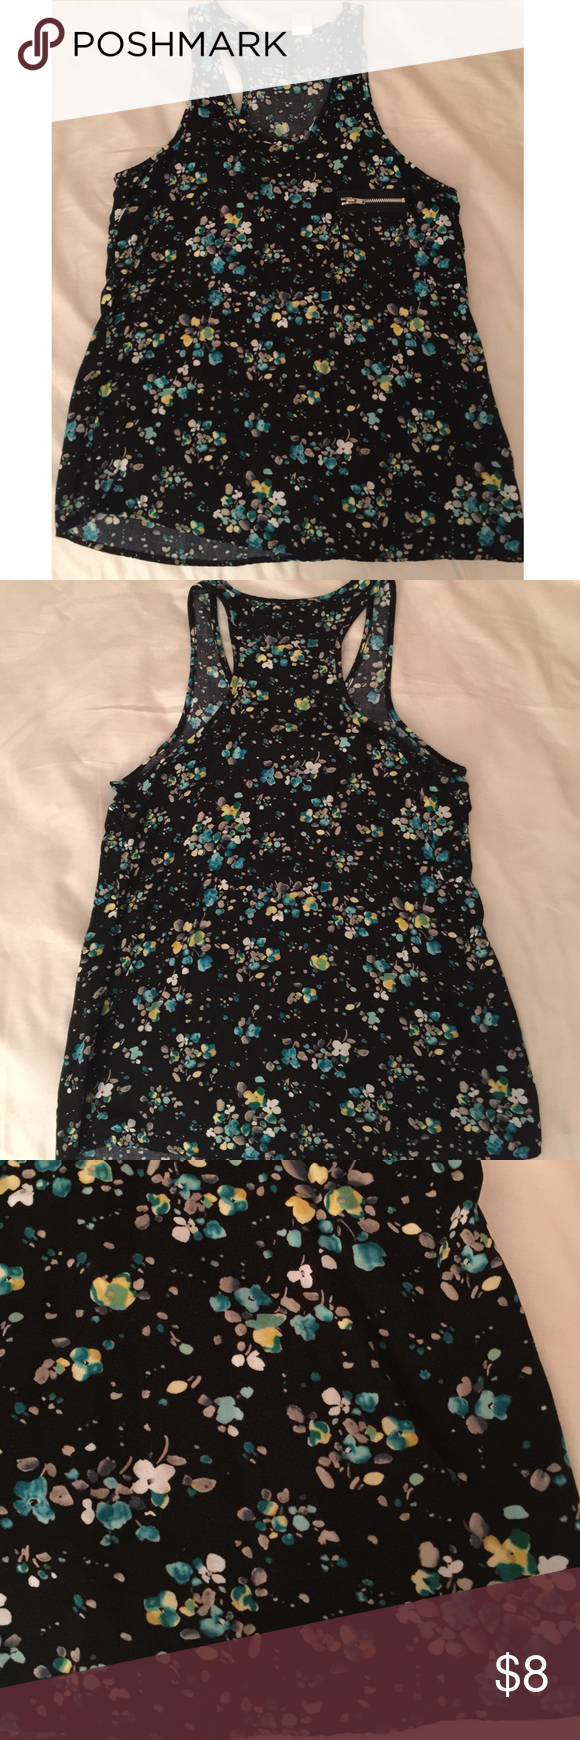 Adorable top barely worn Barely worn perfect condition- adorable black top with racer back body- beautiful abstract floral print all over with zippered front pocket (actually is a pocket too!). Can fit a M.    💥BUNDLE to save 20%💥 Tops Tank Tops